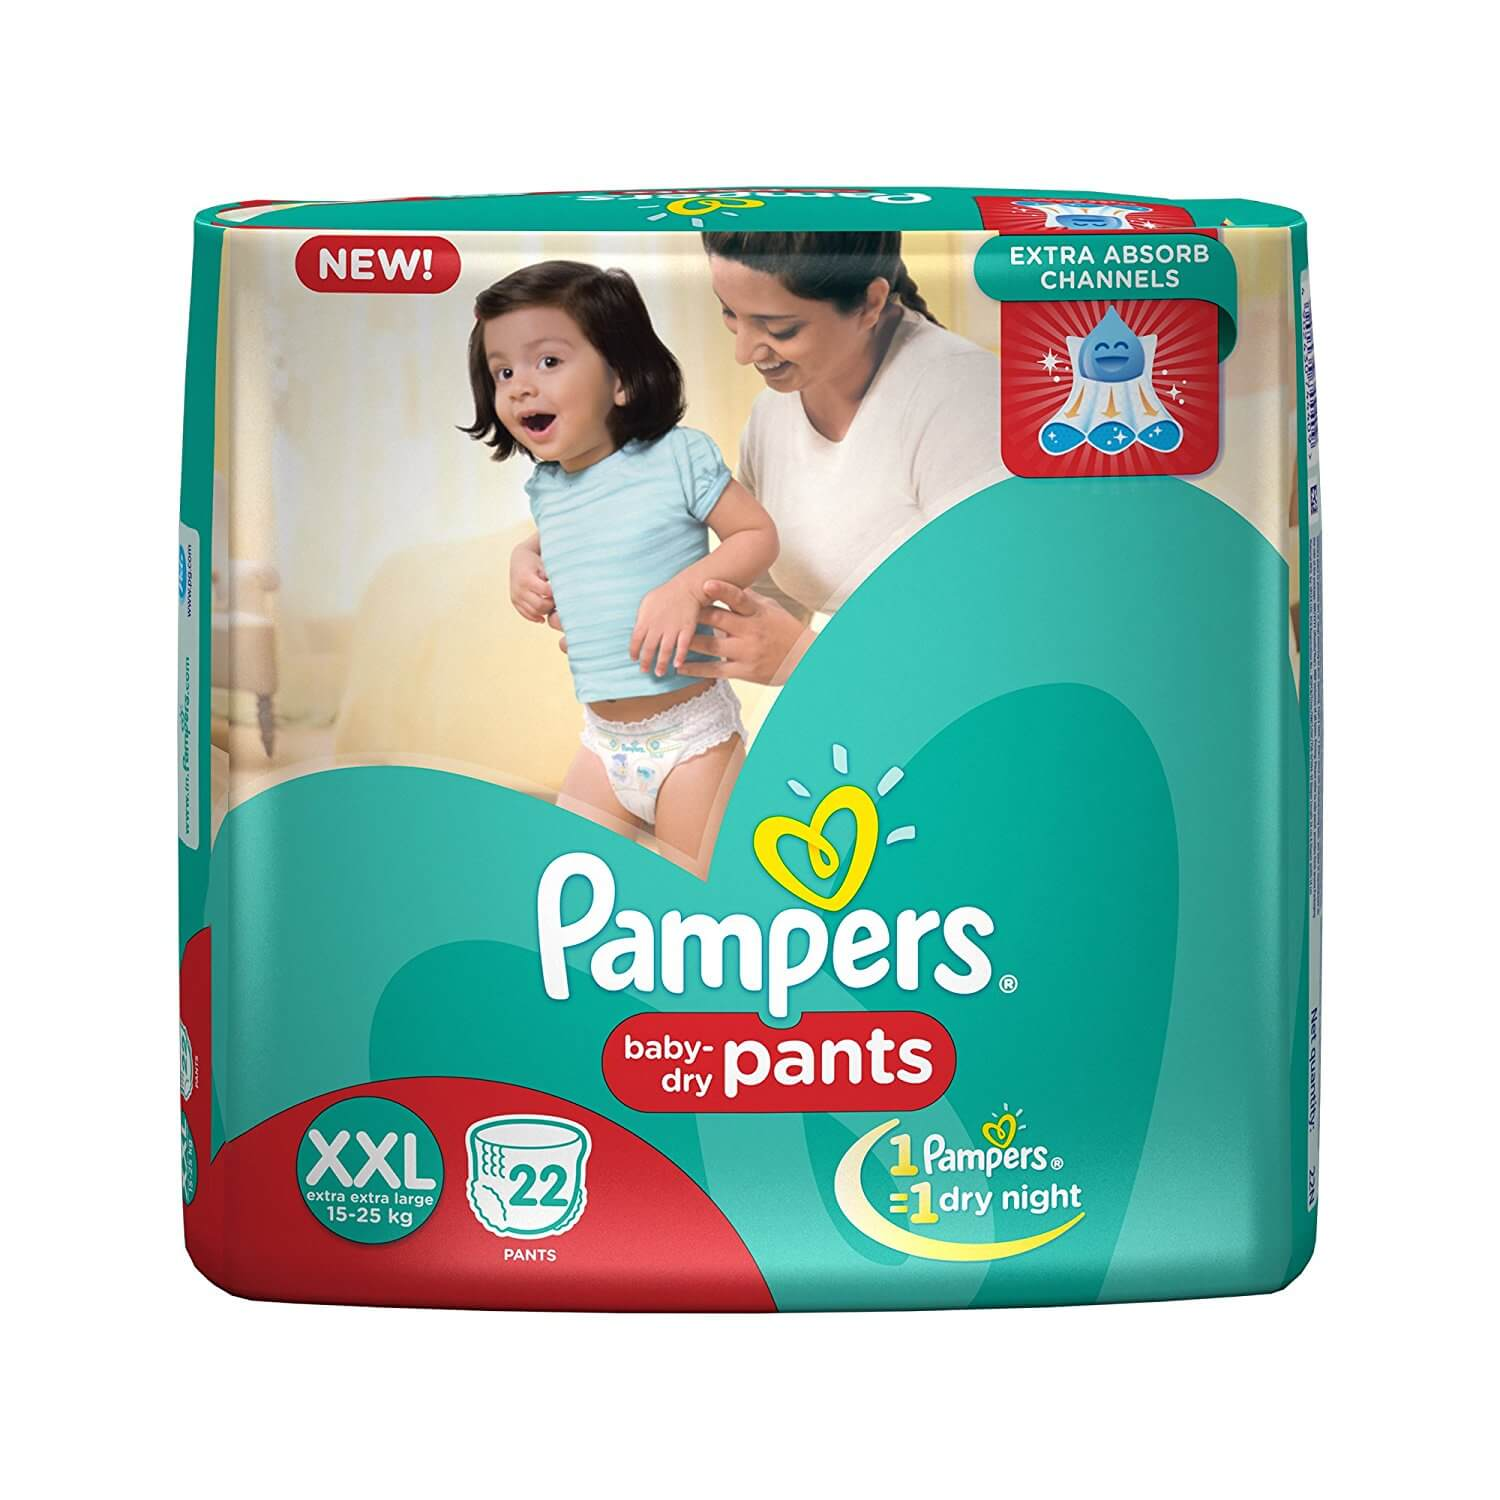 Pampers Pants Double Extra Large Size Diapers(22 Count)